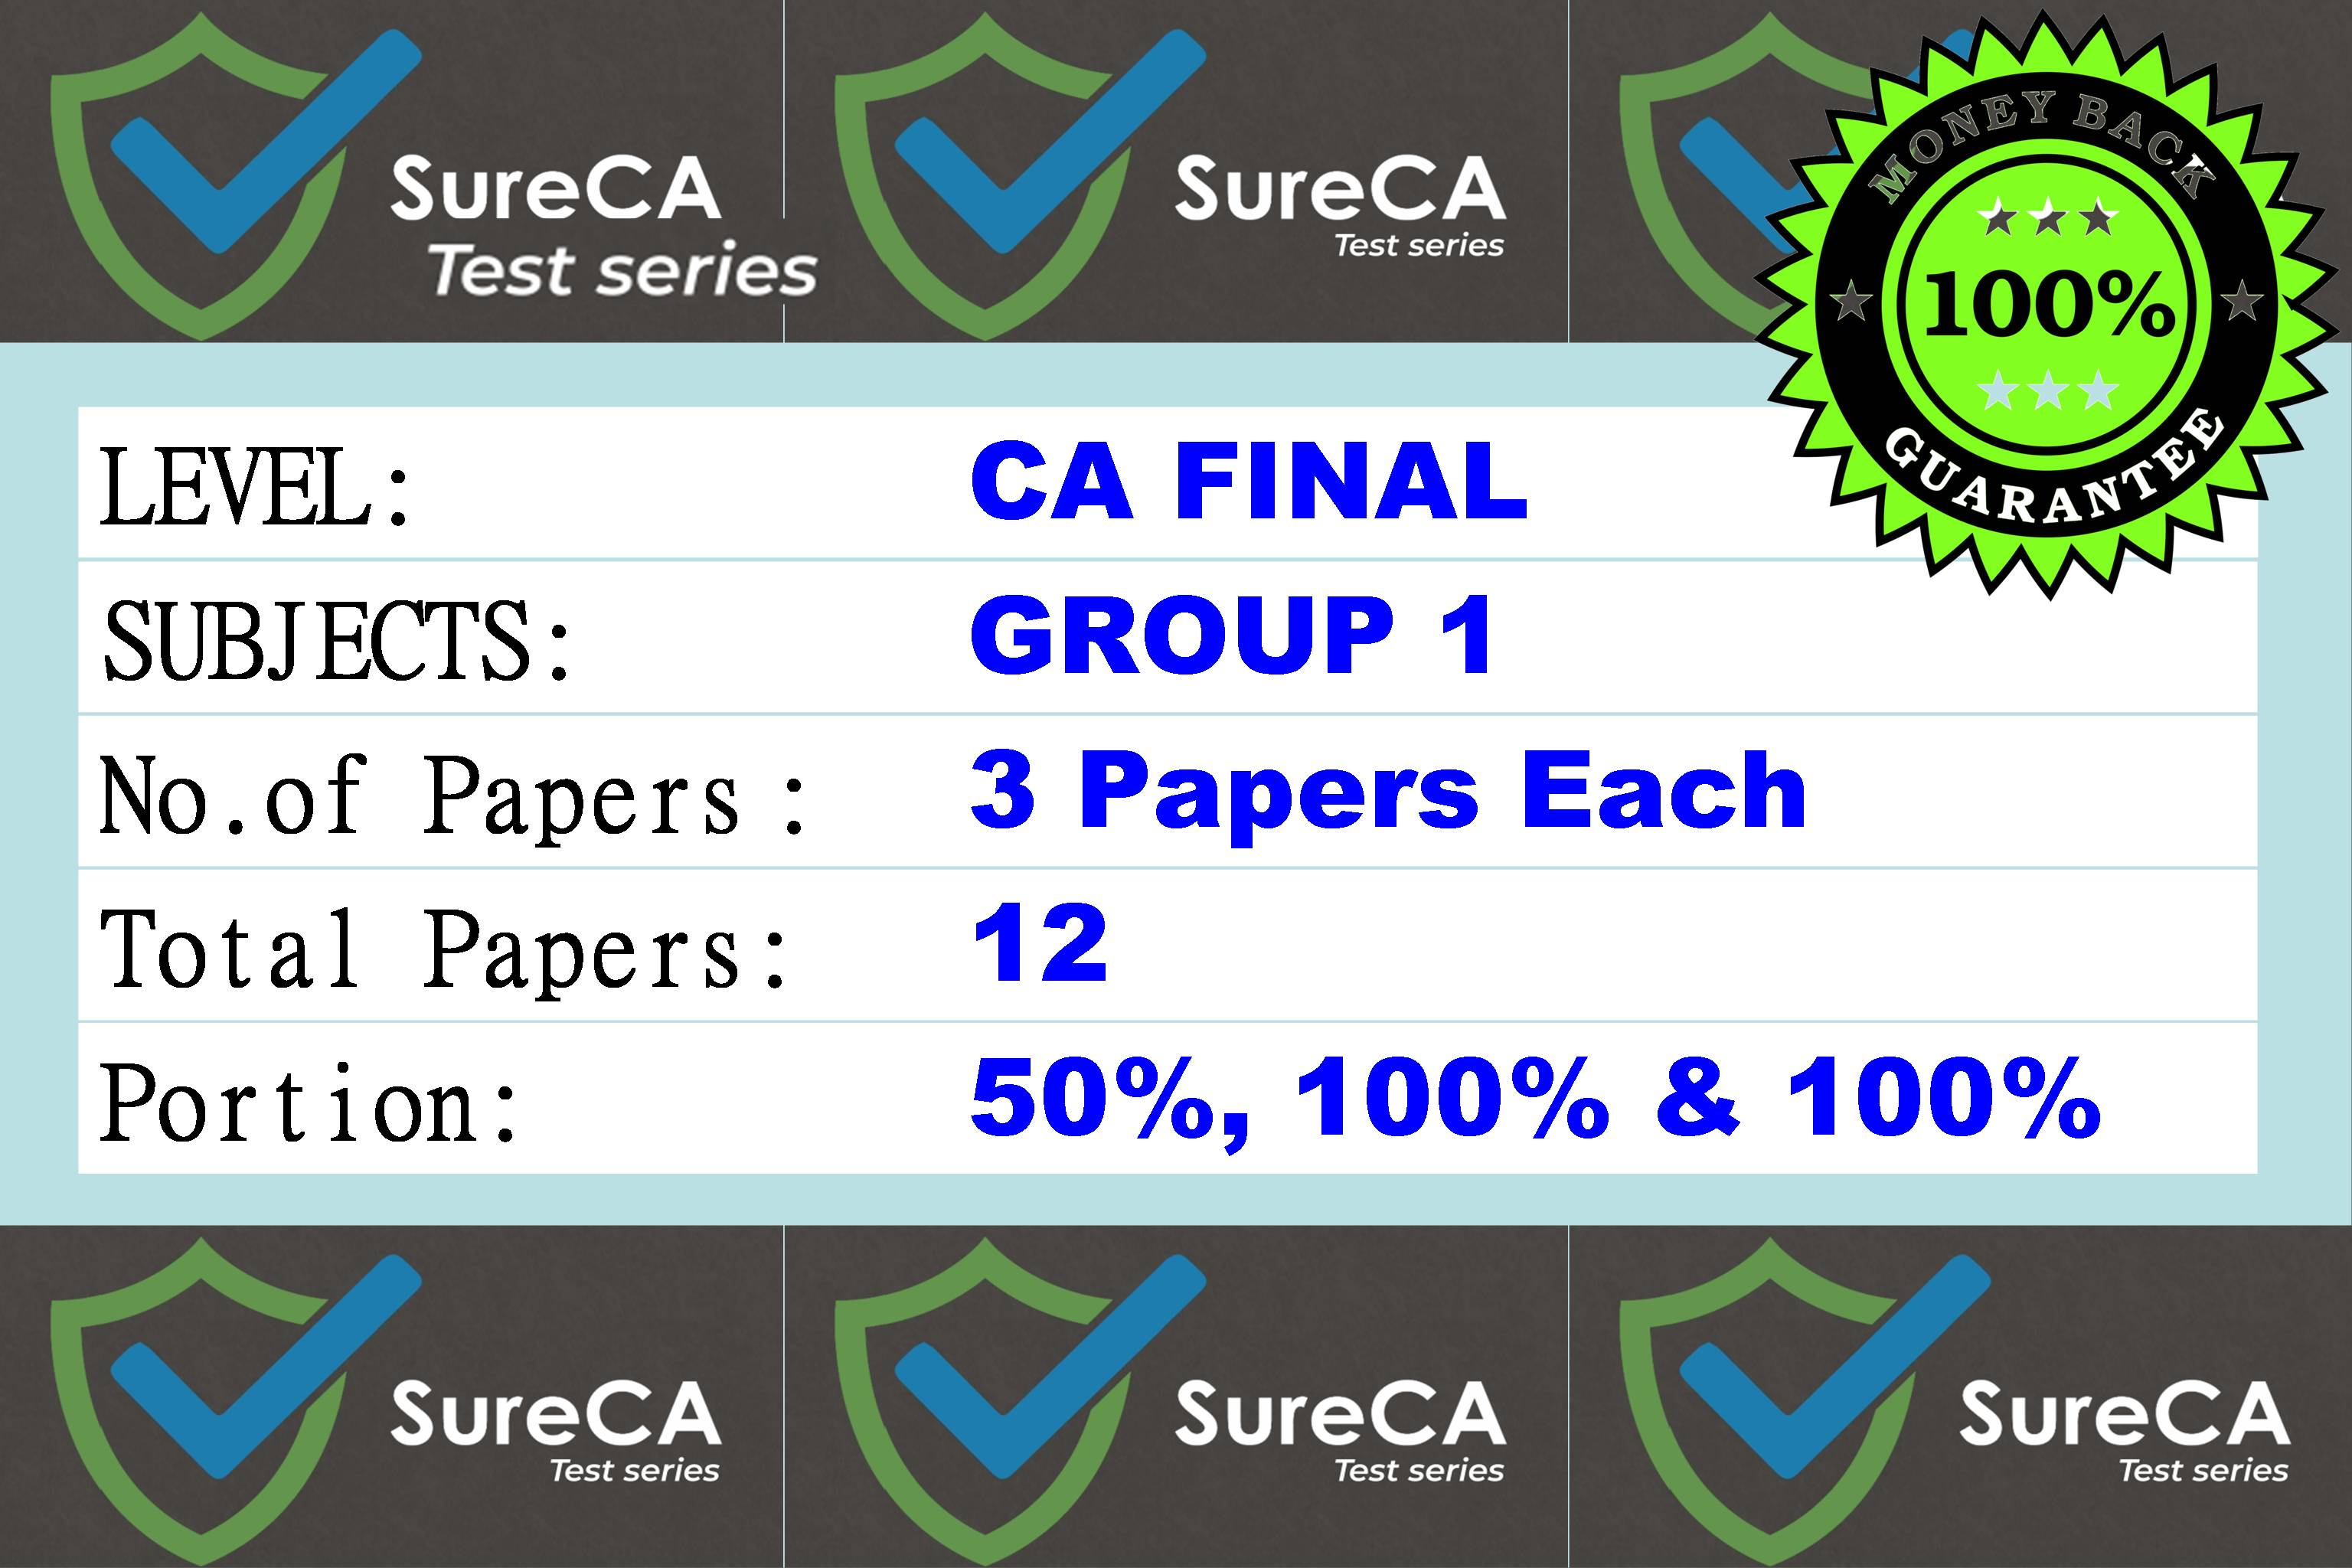 #2 –  SURE CA – CAFINAL – Test Series – Group 1 – 12 Papers